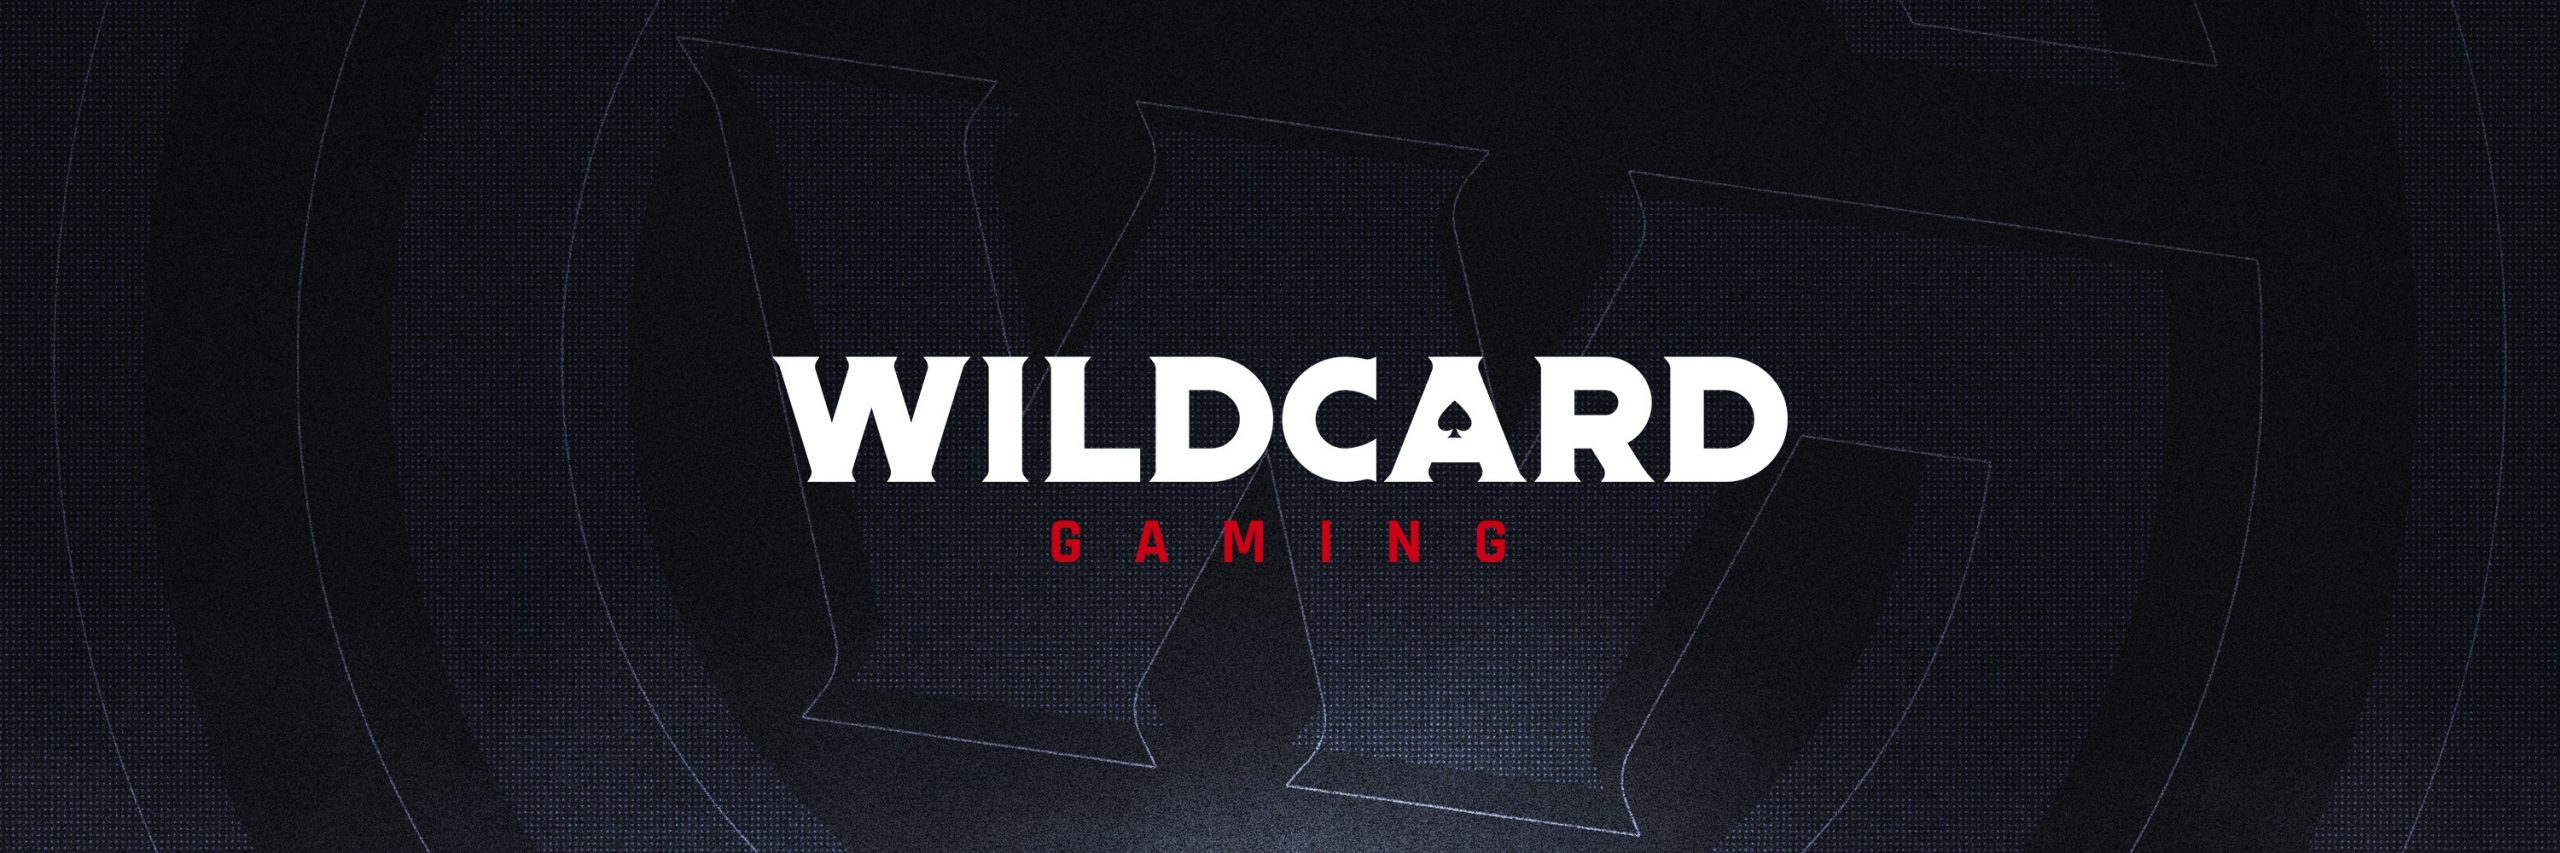 Wildcard Gaming Banner